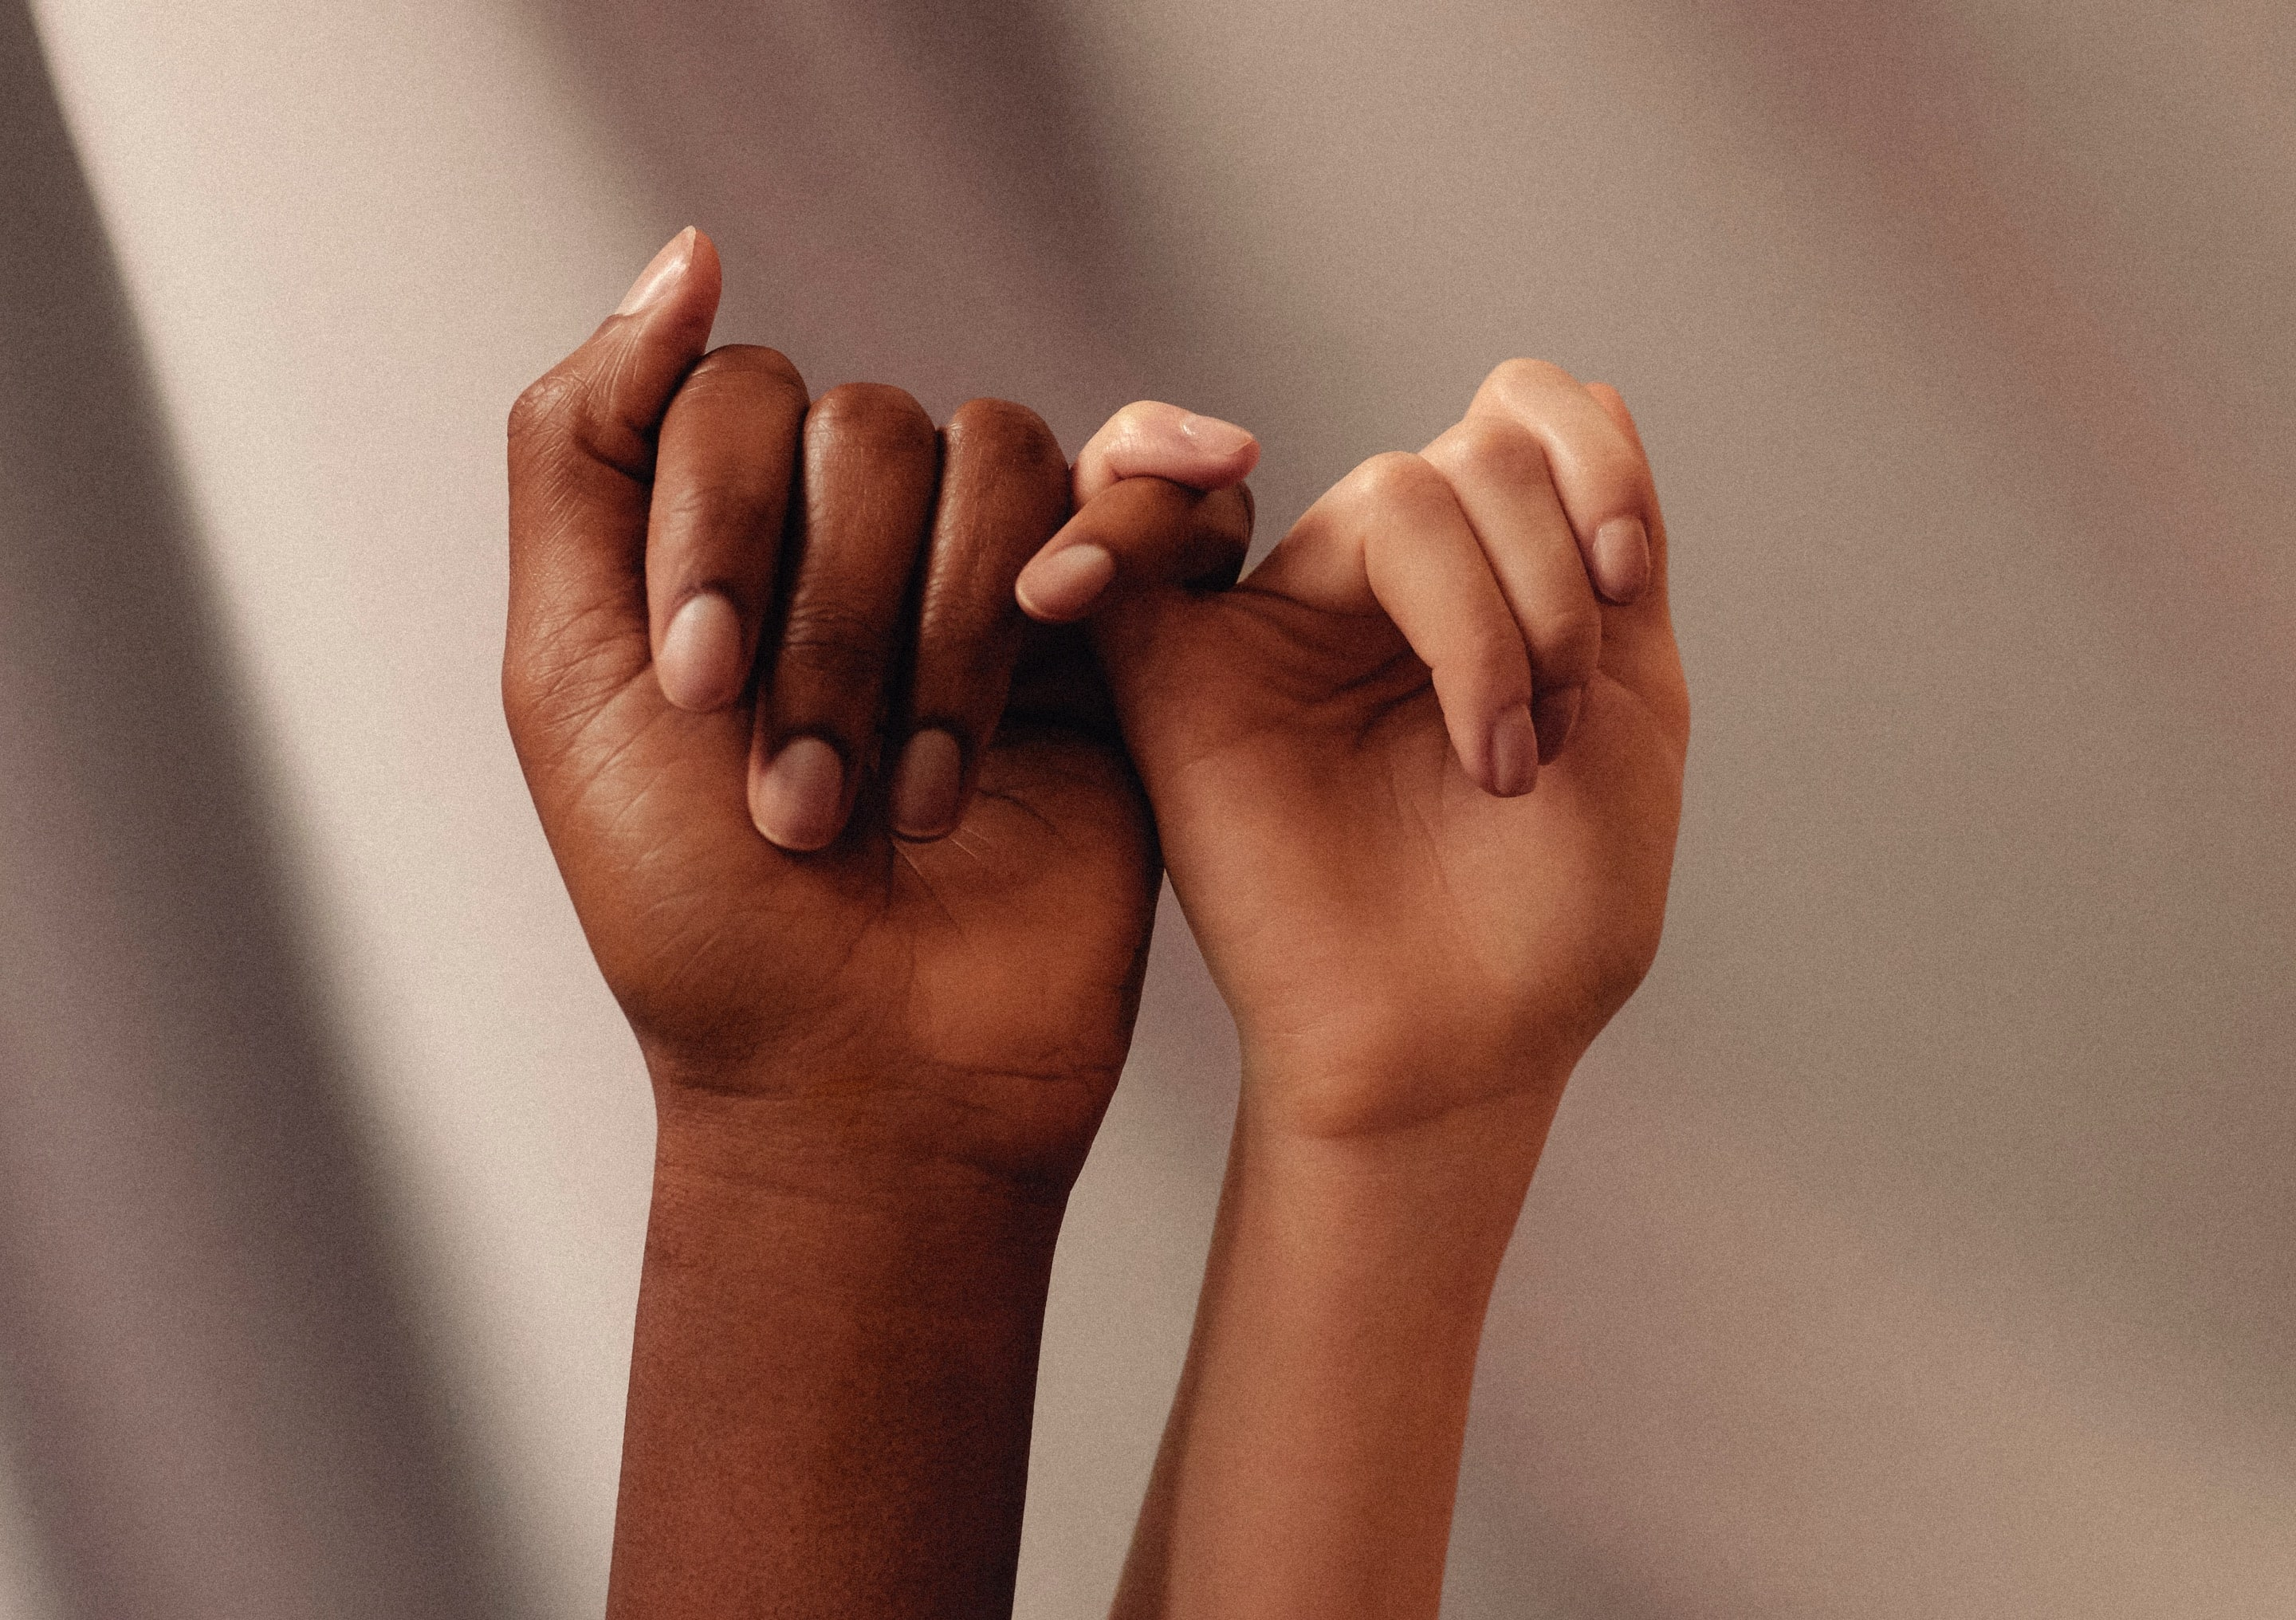 One darker and one lighter skinned hands making a pinkie promise gesture